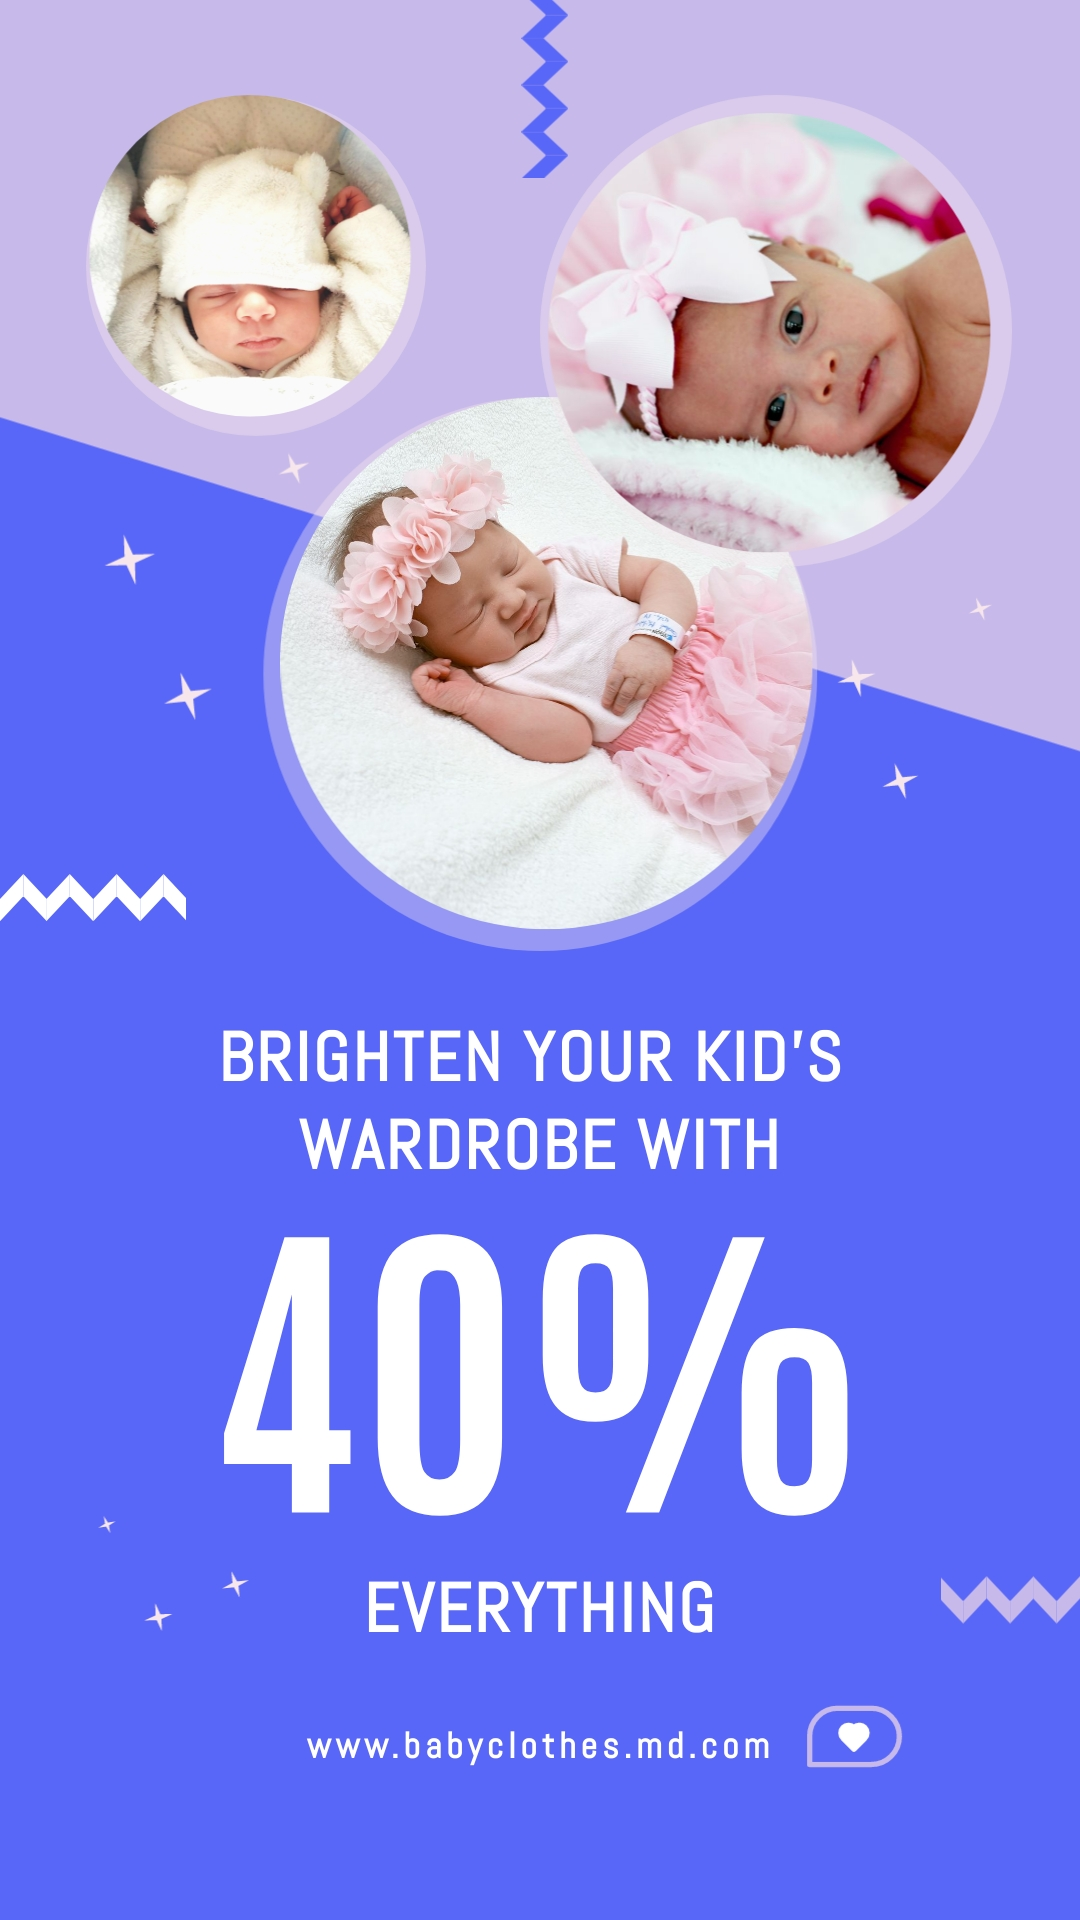 Baby Clothes Bite-Sized Ad Vertical Template